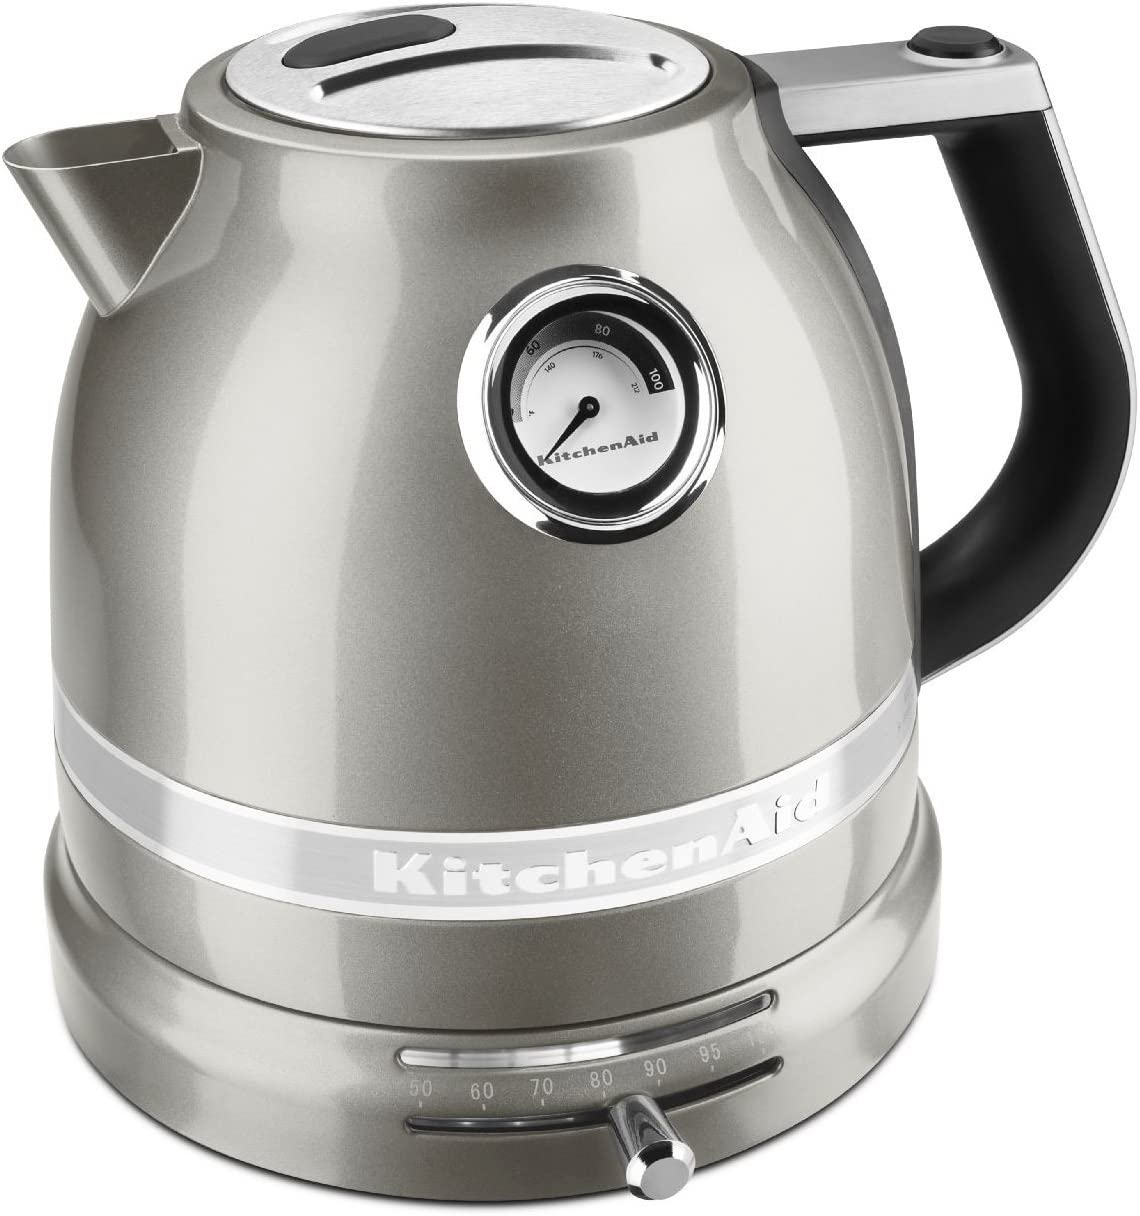 KitchenAid KEK1522SR Pro Line Sugar Pearl Silver 1.5 Liter Electric Kettle